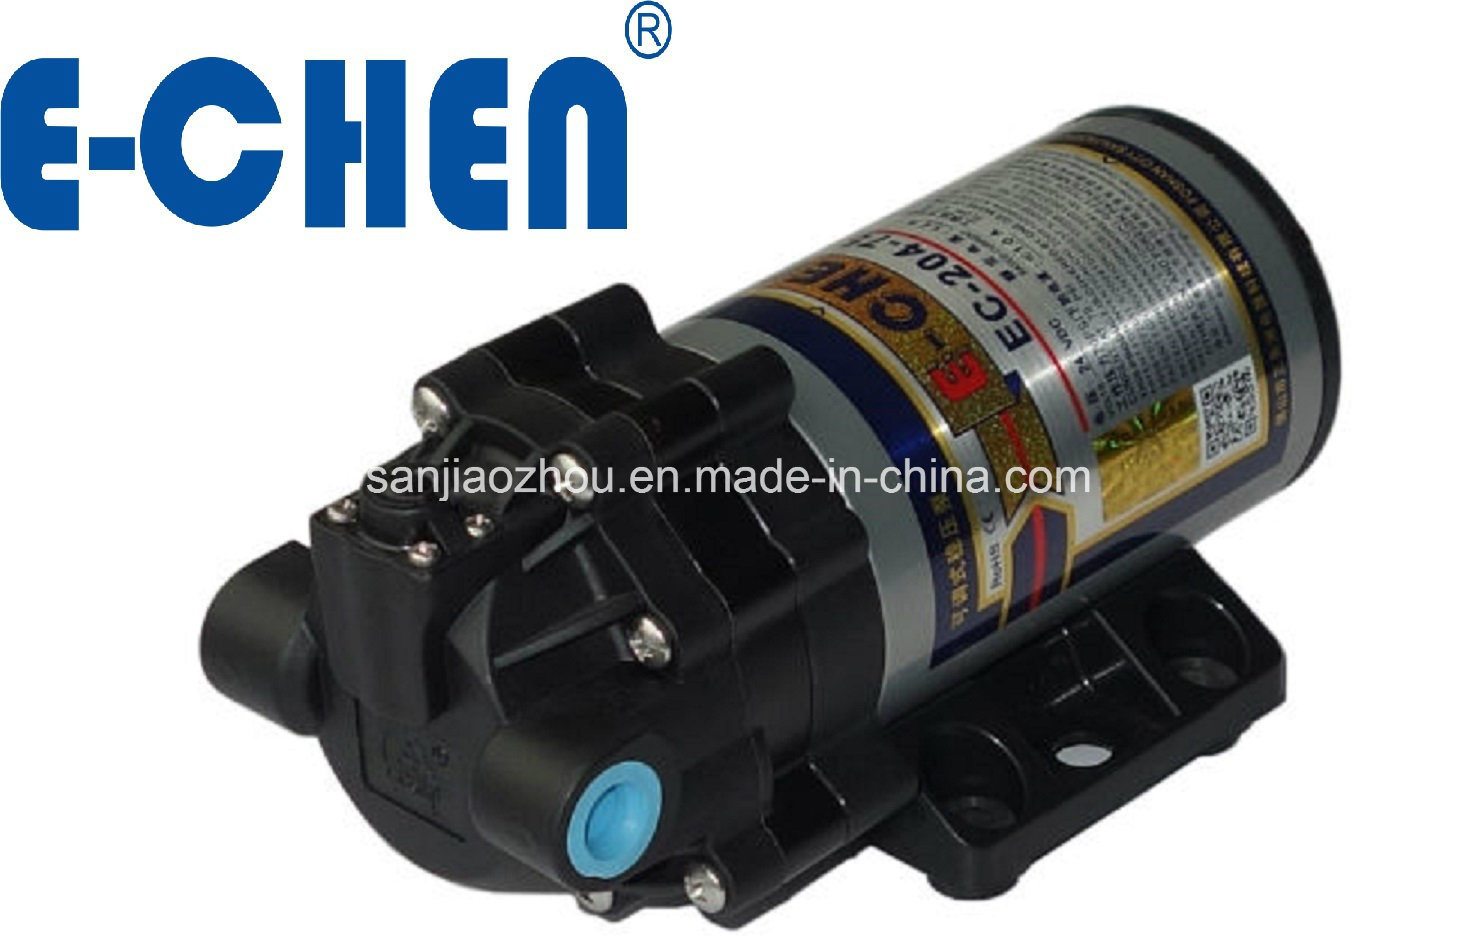 E-Chen 204 Series 400gpd Diaphragm RO Booster Pump - Self Priming Self Pressure Regulating Water Pump